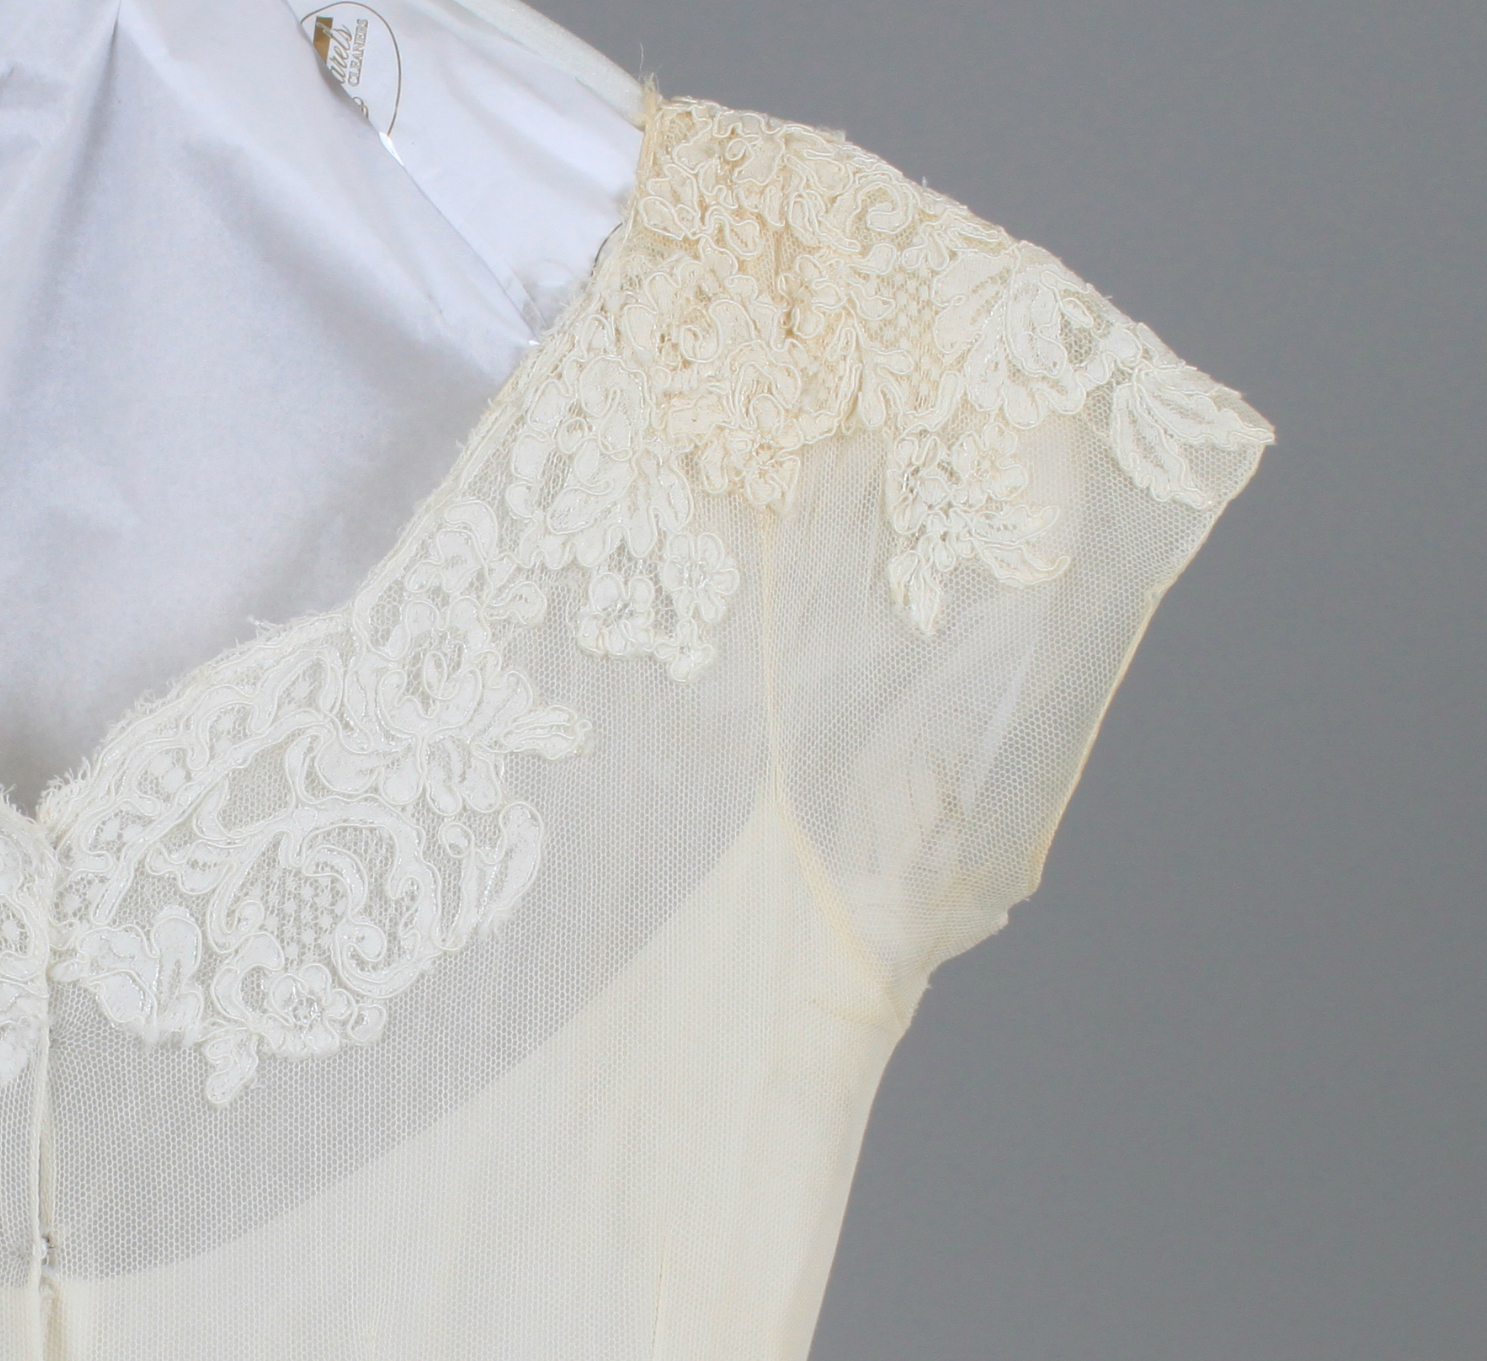 Wedding Gown Cleaning: Bridal Gown Cleaning & Preservation: Follow A 50-year-old